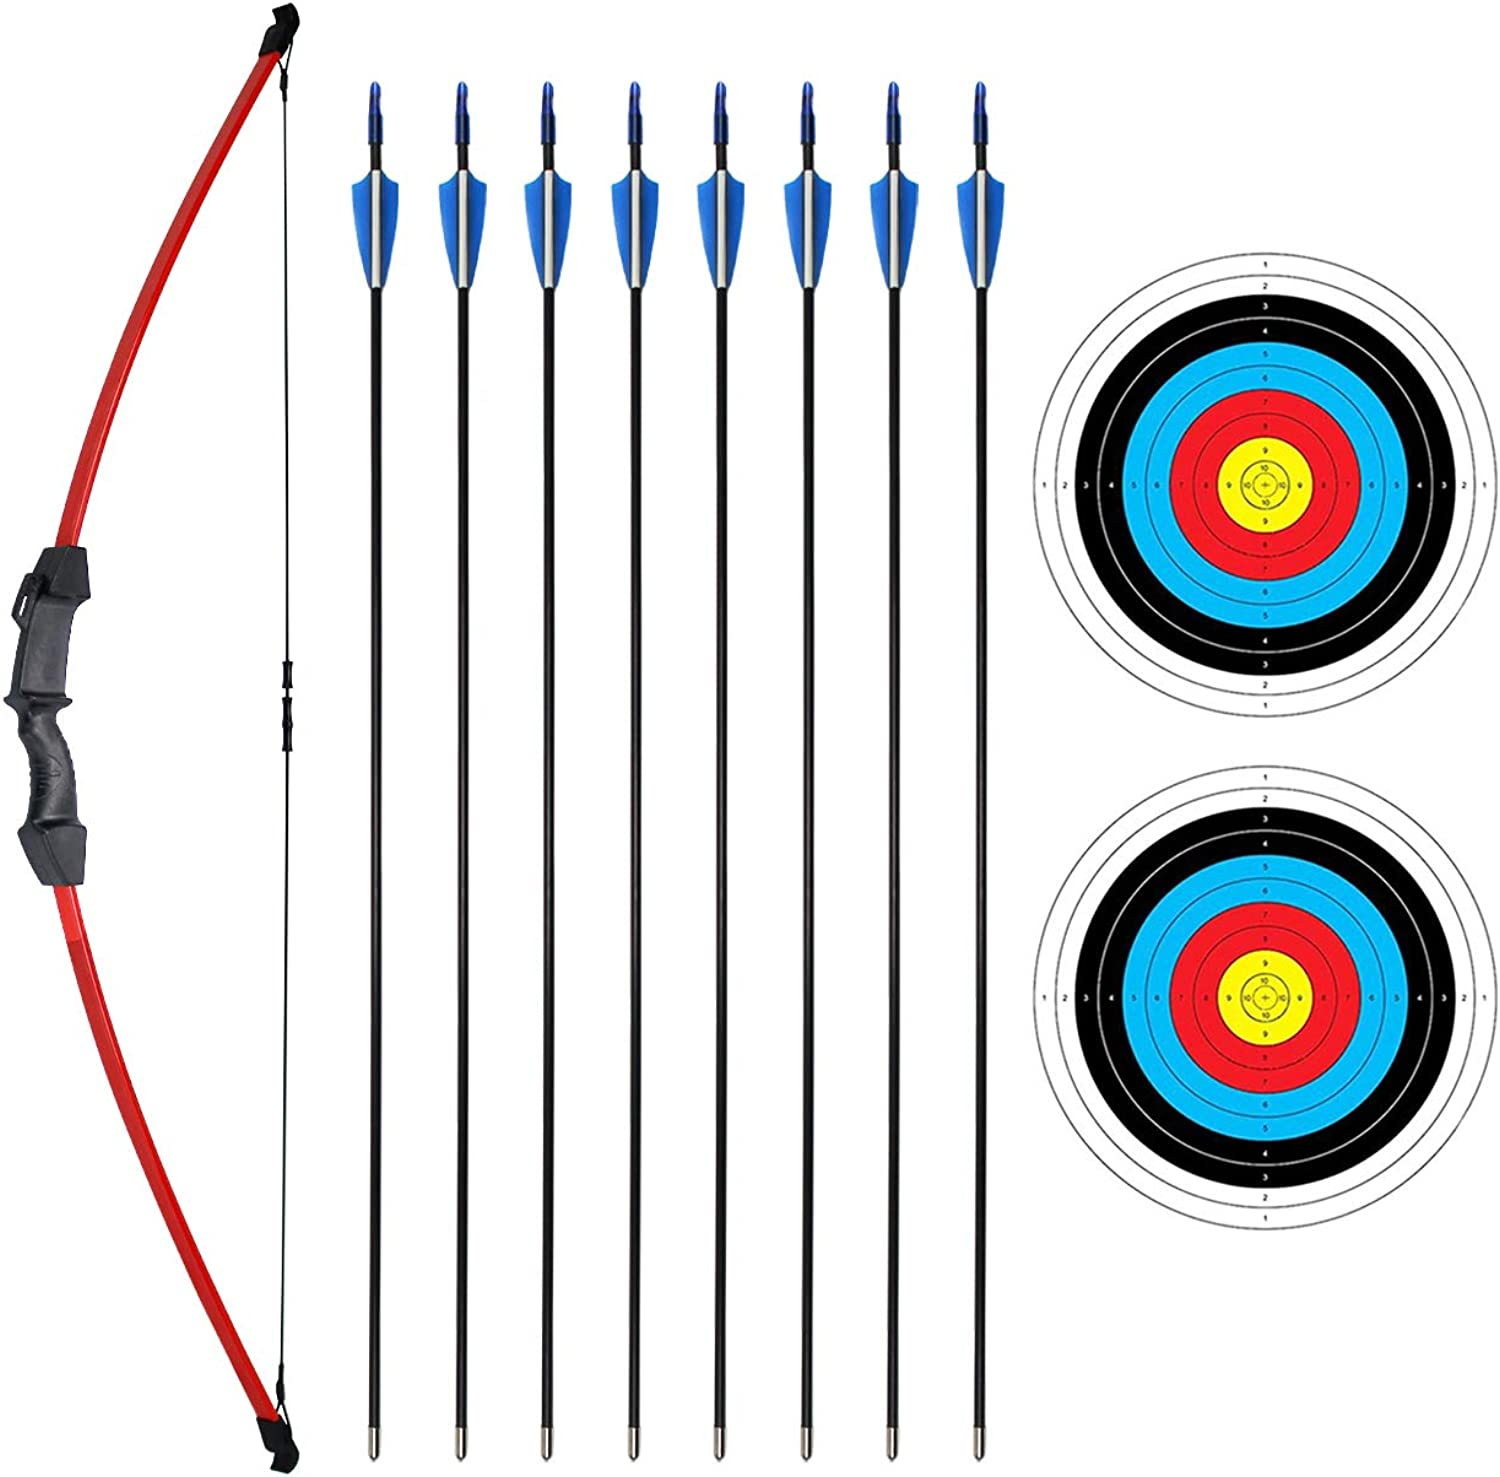 SinoArt 45  Recurve Bow and Arrow Set for Kids Archery with 8 Arrows 2 Target Paper